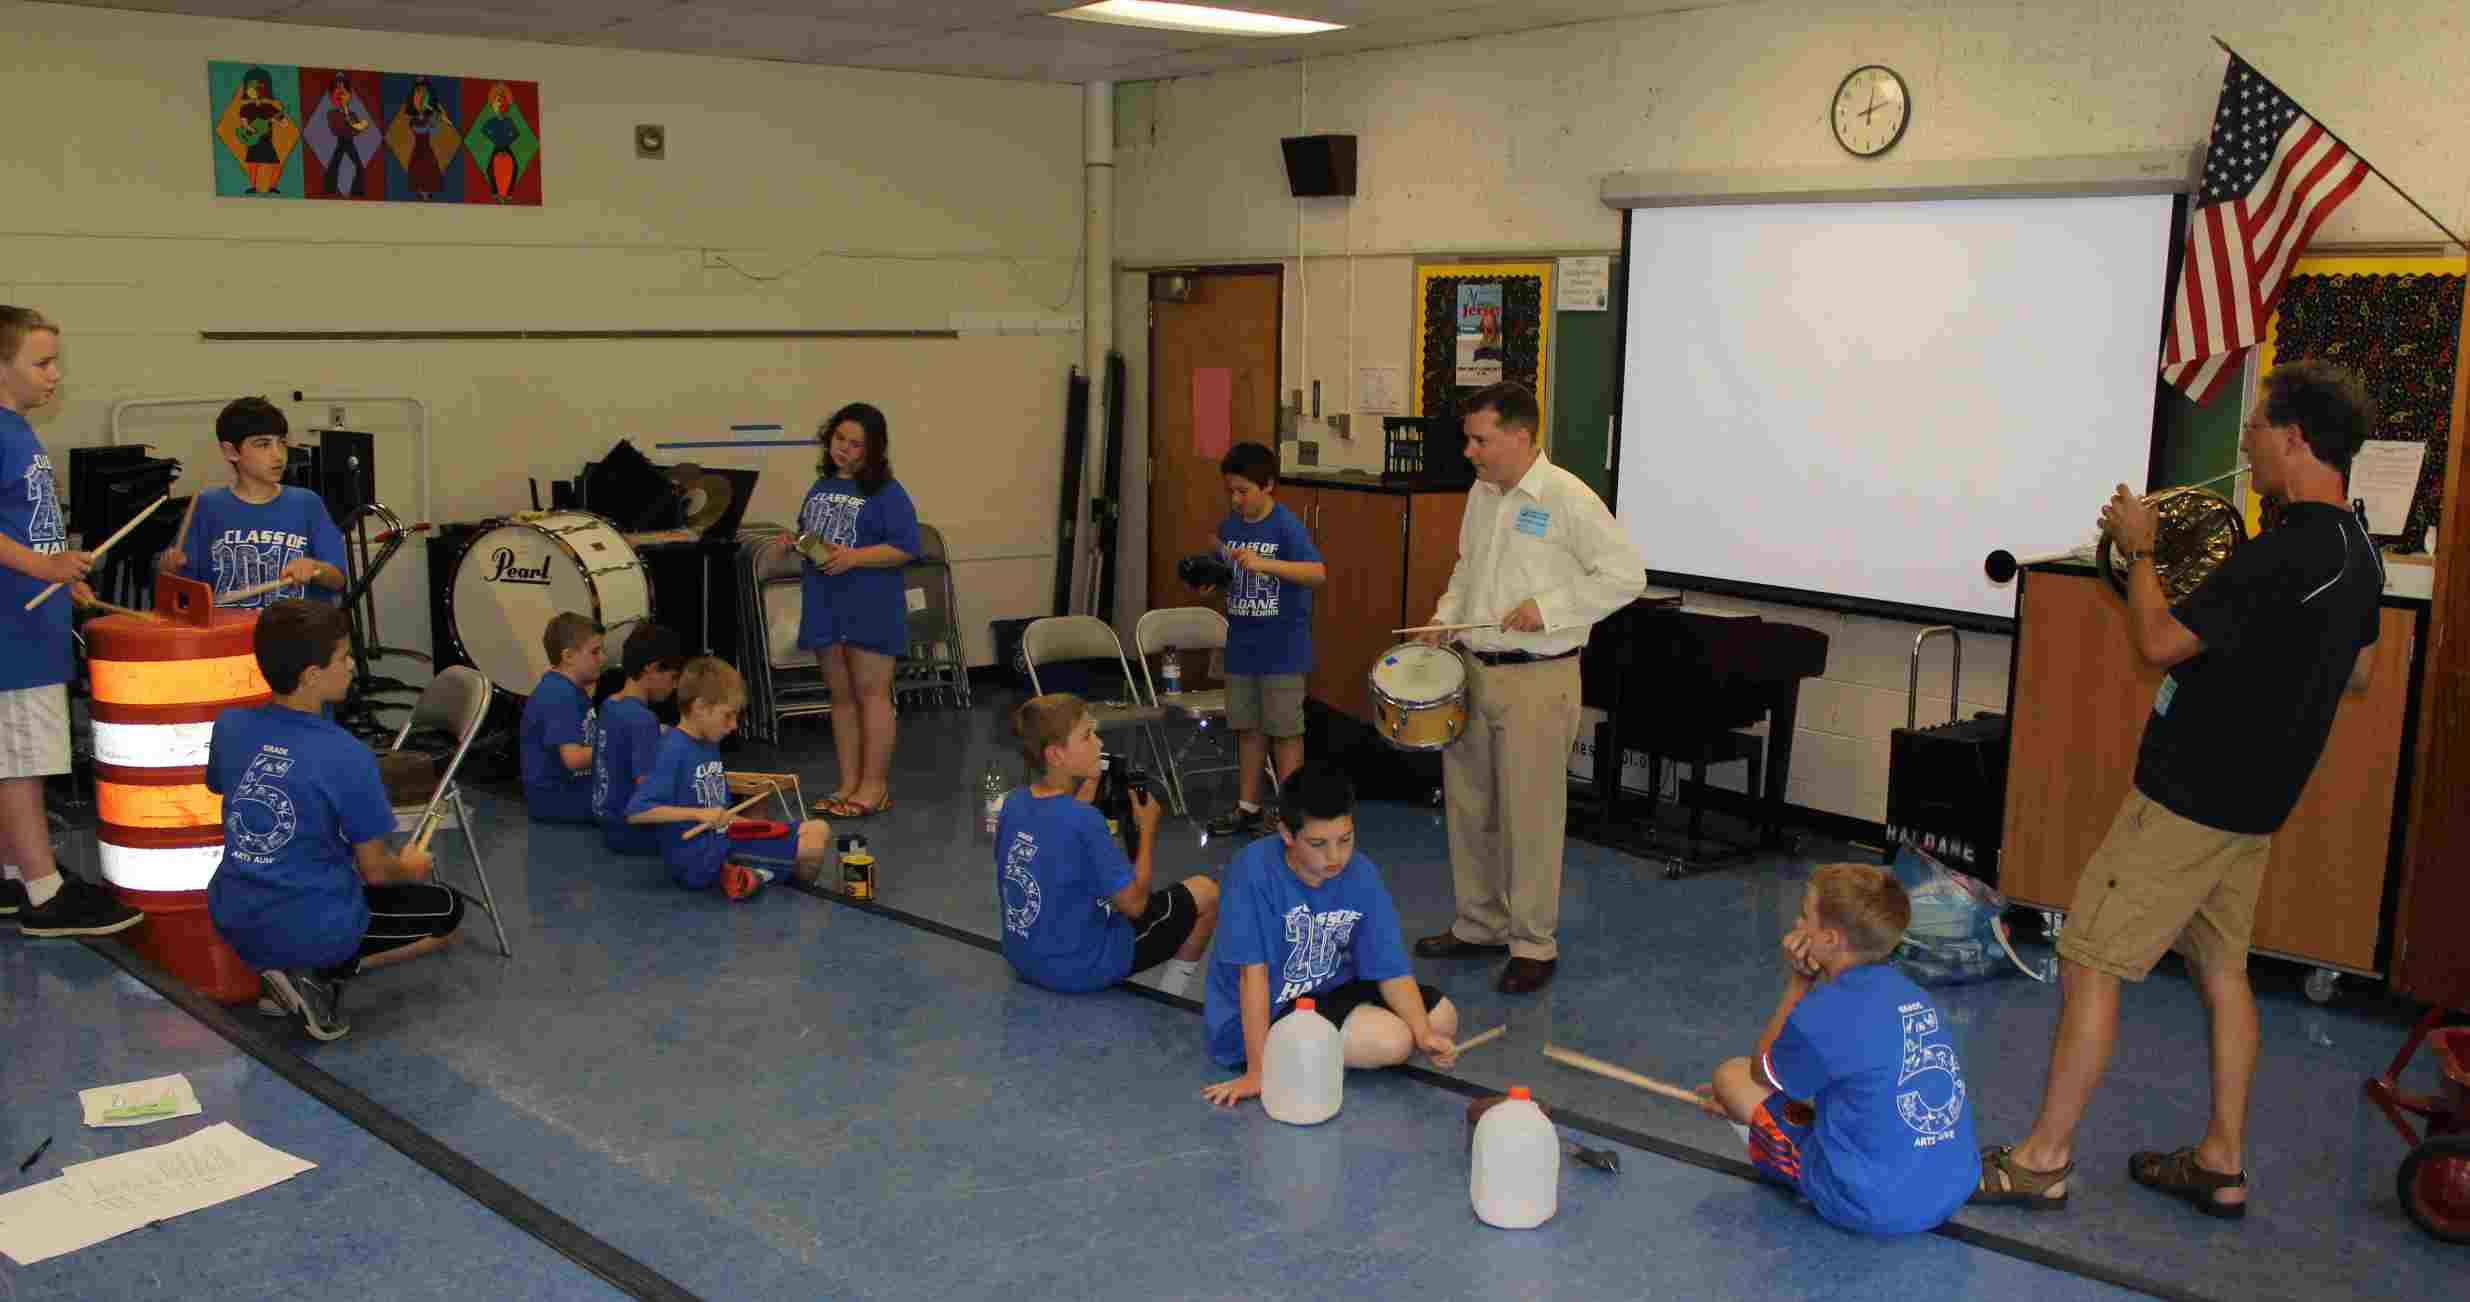 Haldane Fifth Grade Arts Day Lost and Found Orchestra Eric Starr and Greg Smith French Horn IMG_9953